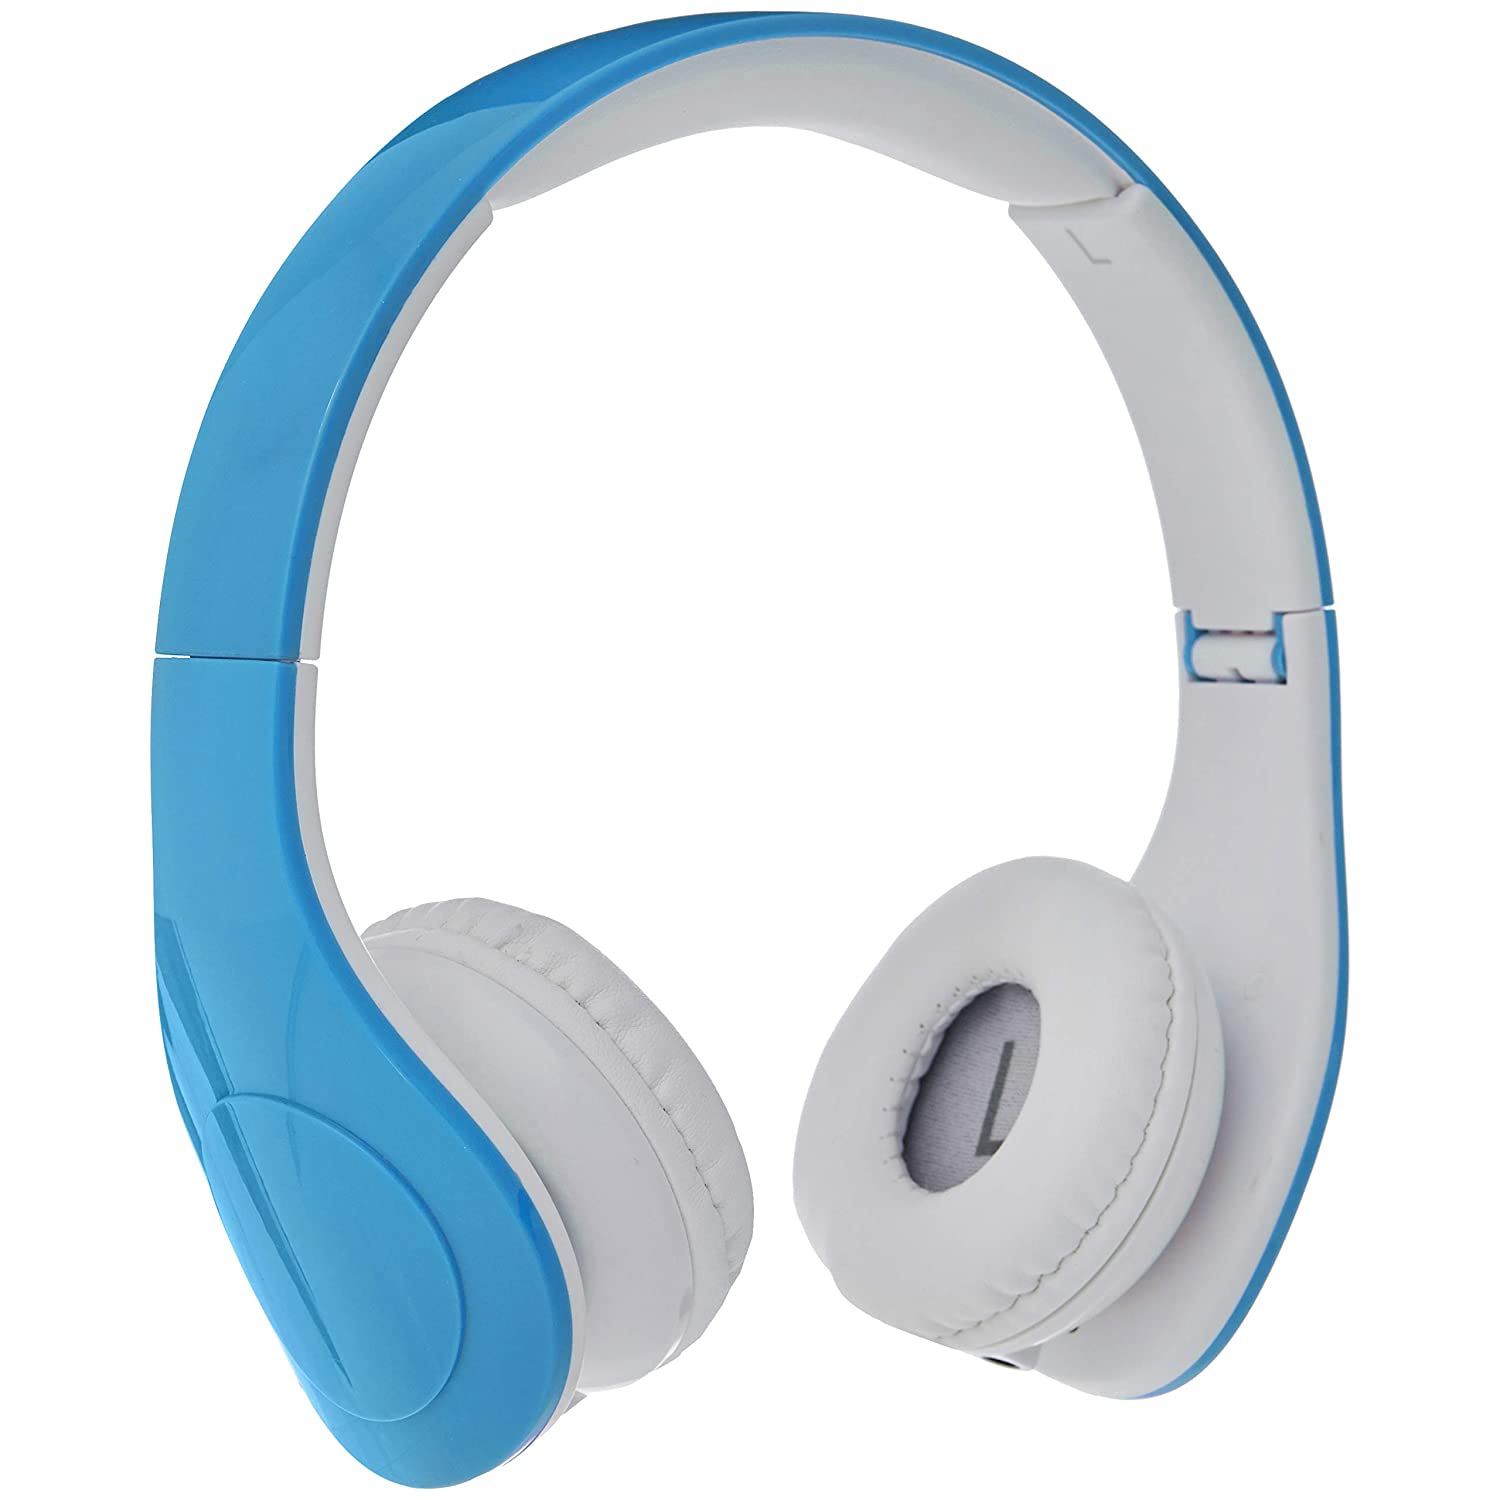 AmazonBasics Volume Limited Wired Headphones for Kids with Two Ports for Sharing – Blue